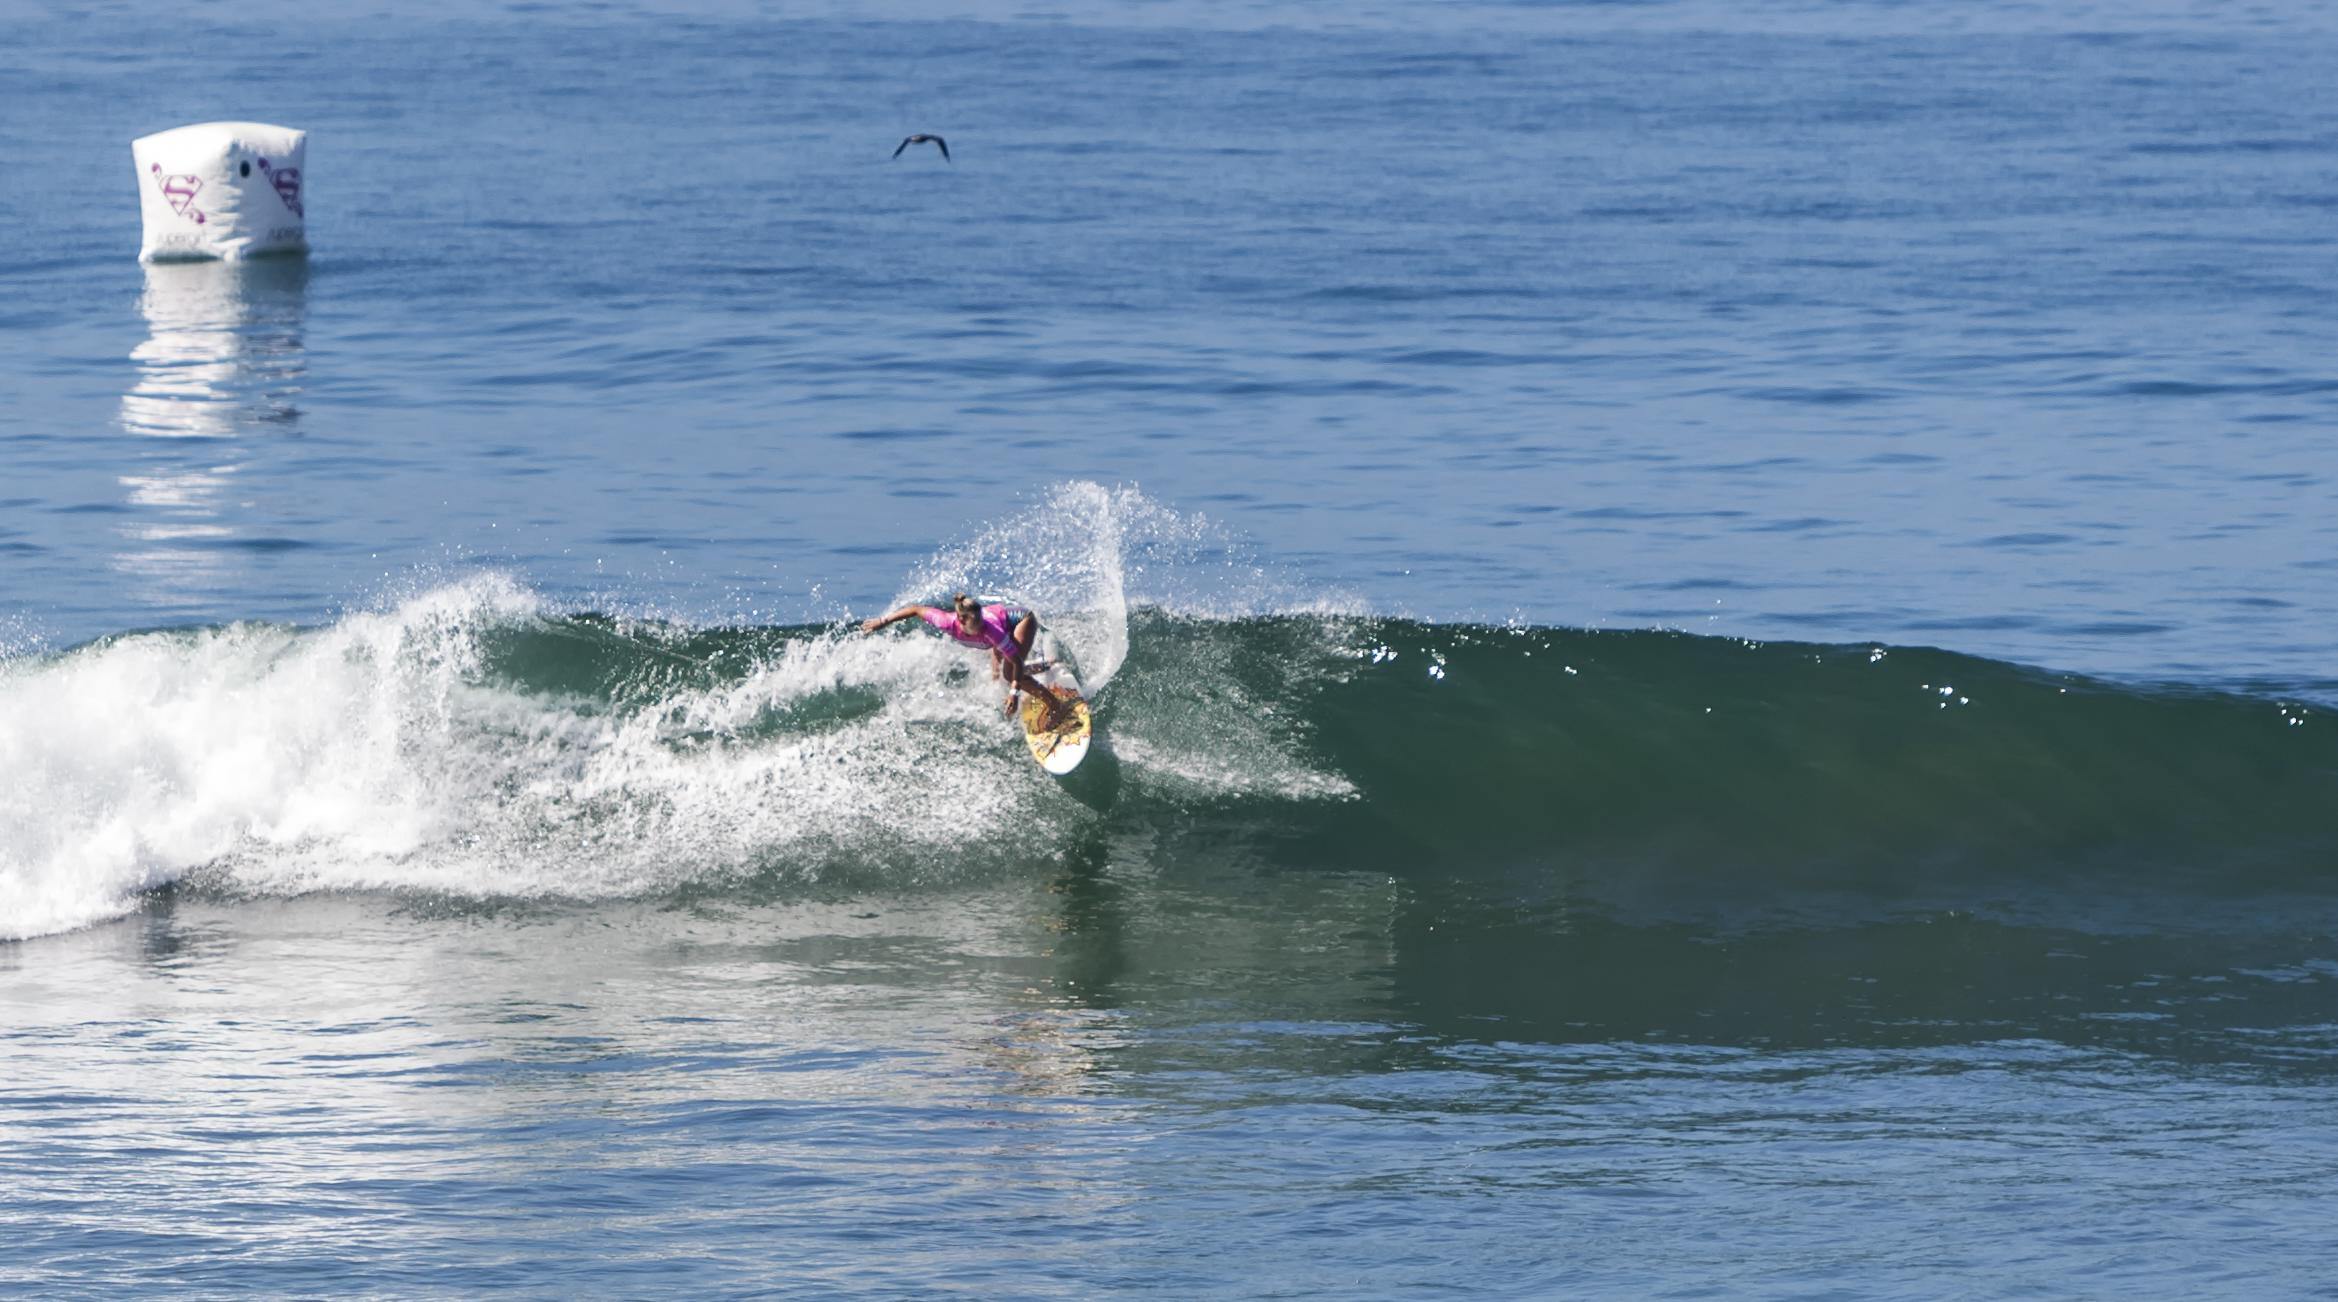 Defending champion Sage Erickson surfs during the Paul Mitchell Supergirl Pro on Saturday in Oceanside. Photo by Bill Reilly